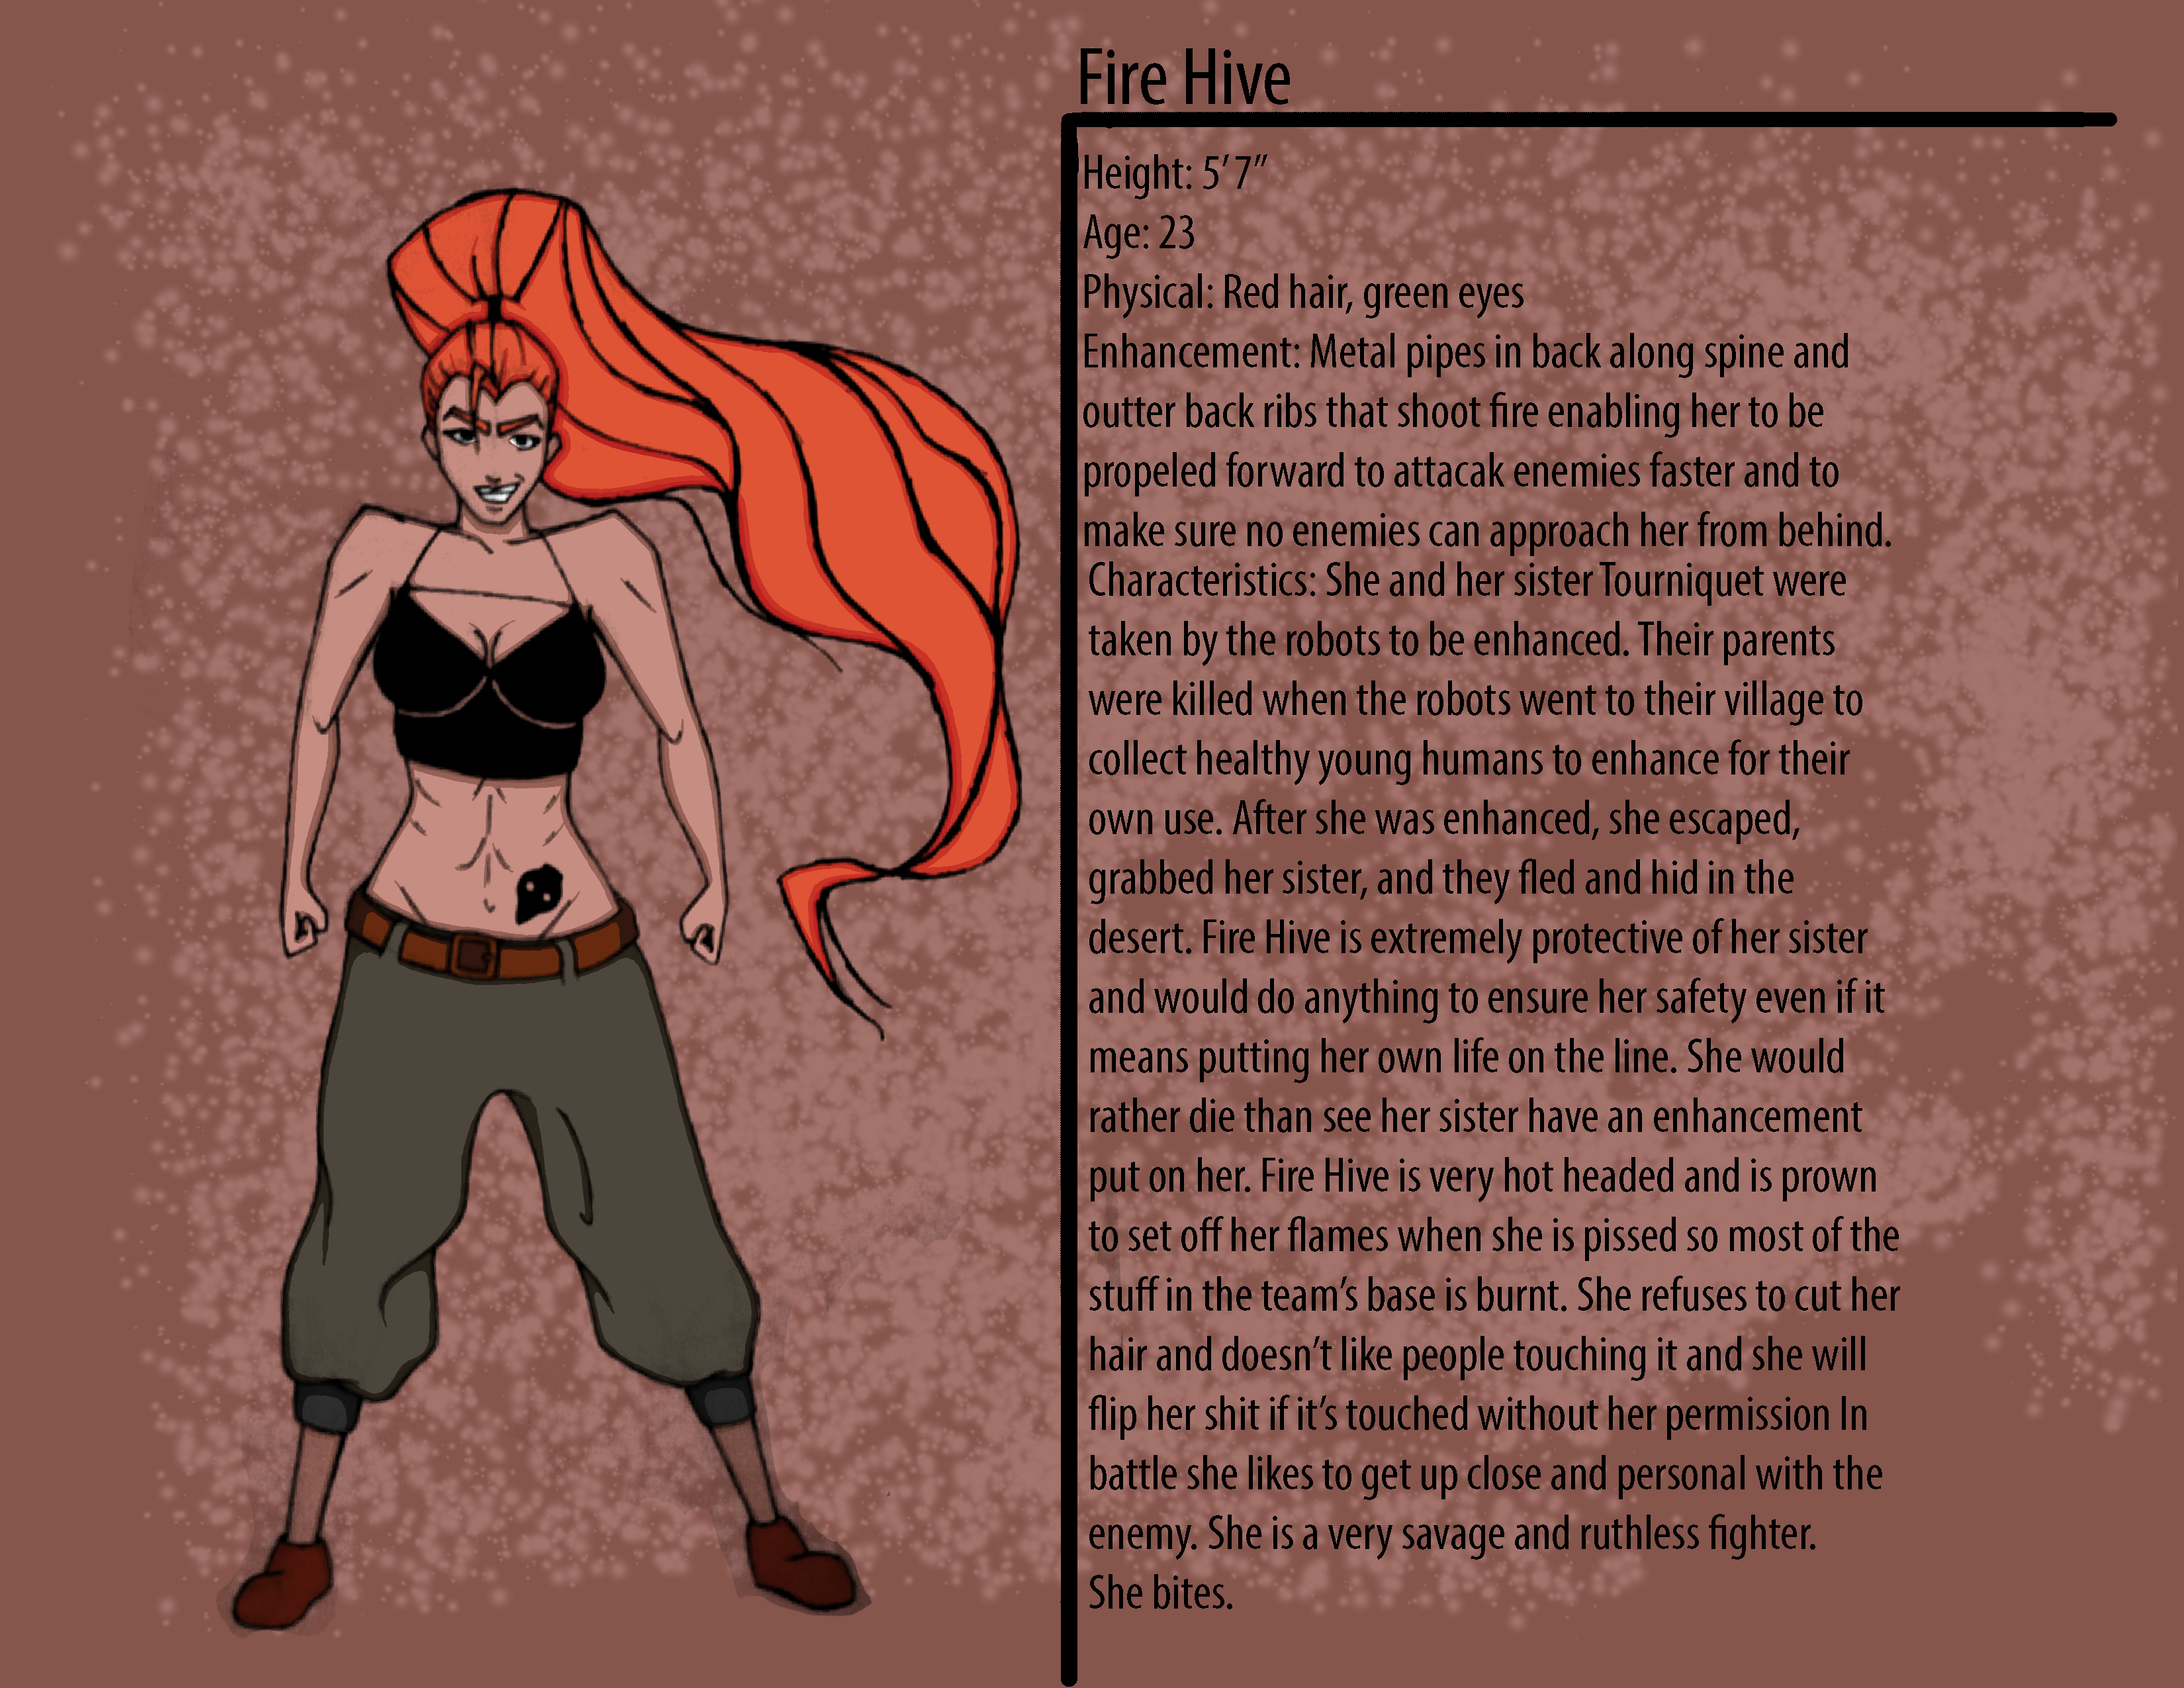 Fire Hive Character Description